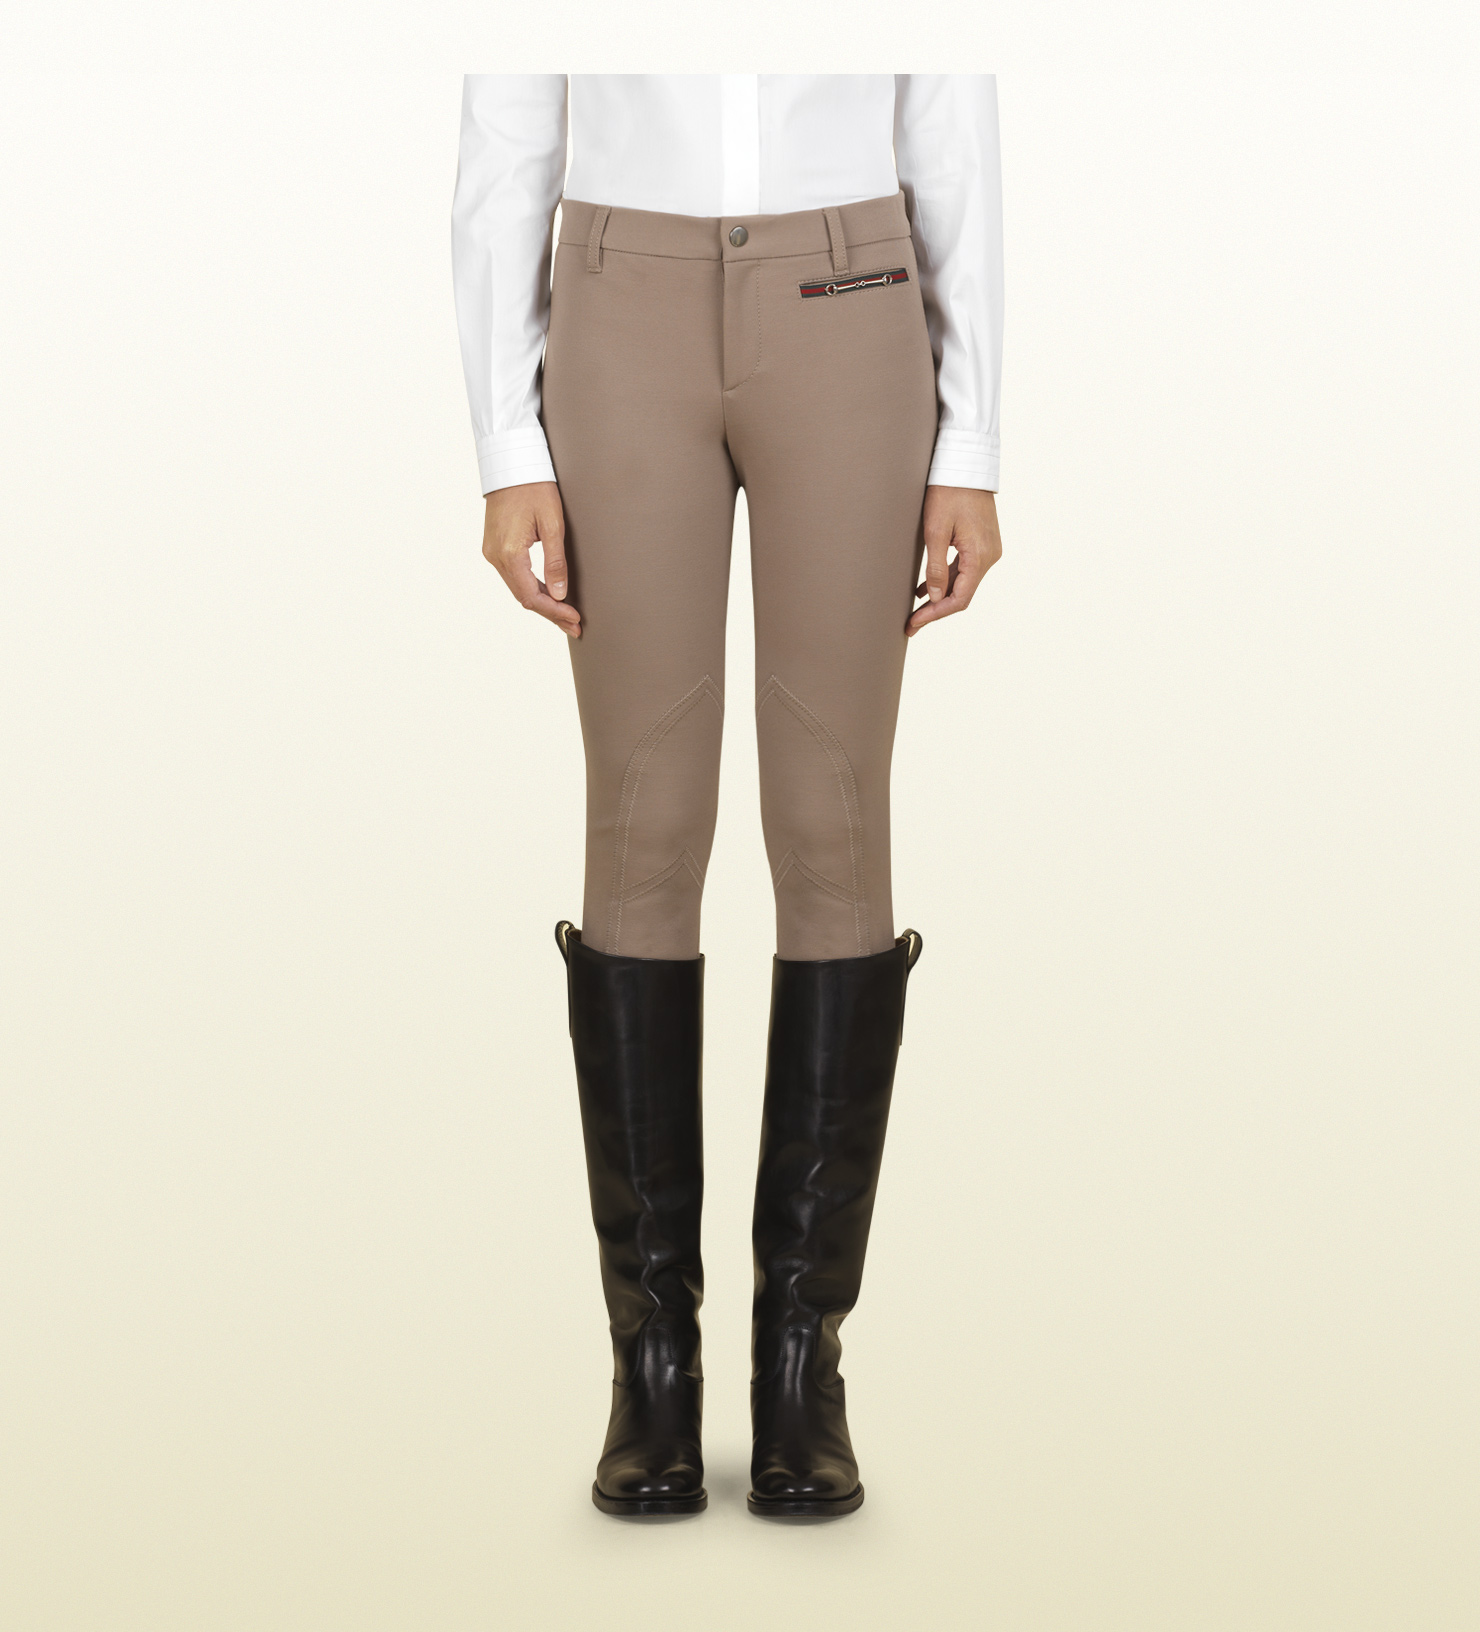 Gucci Beige Riding Pant From Equestrian Collection In